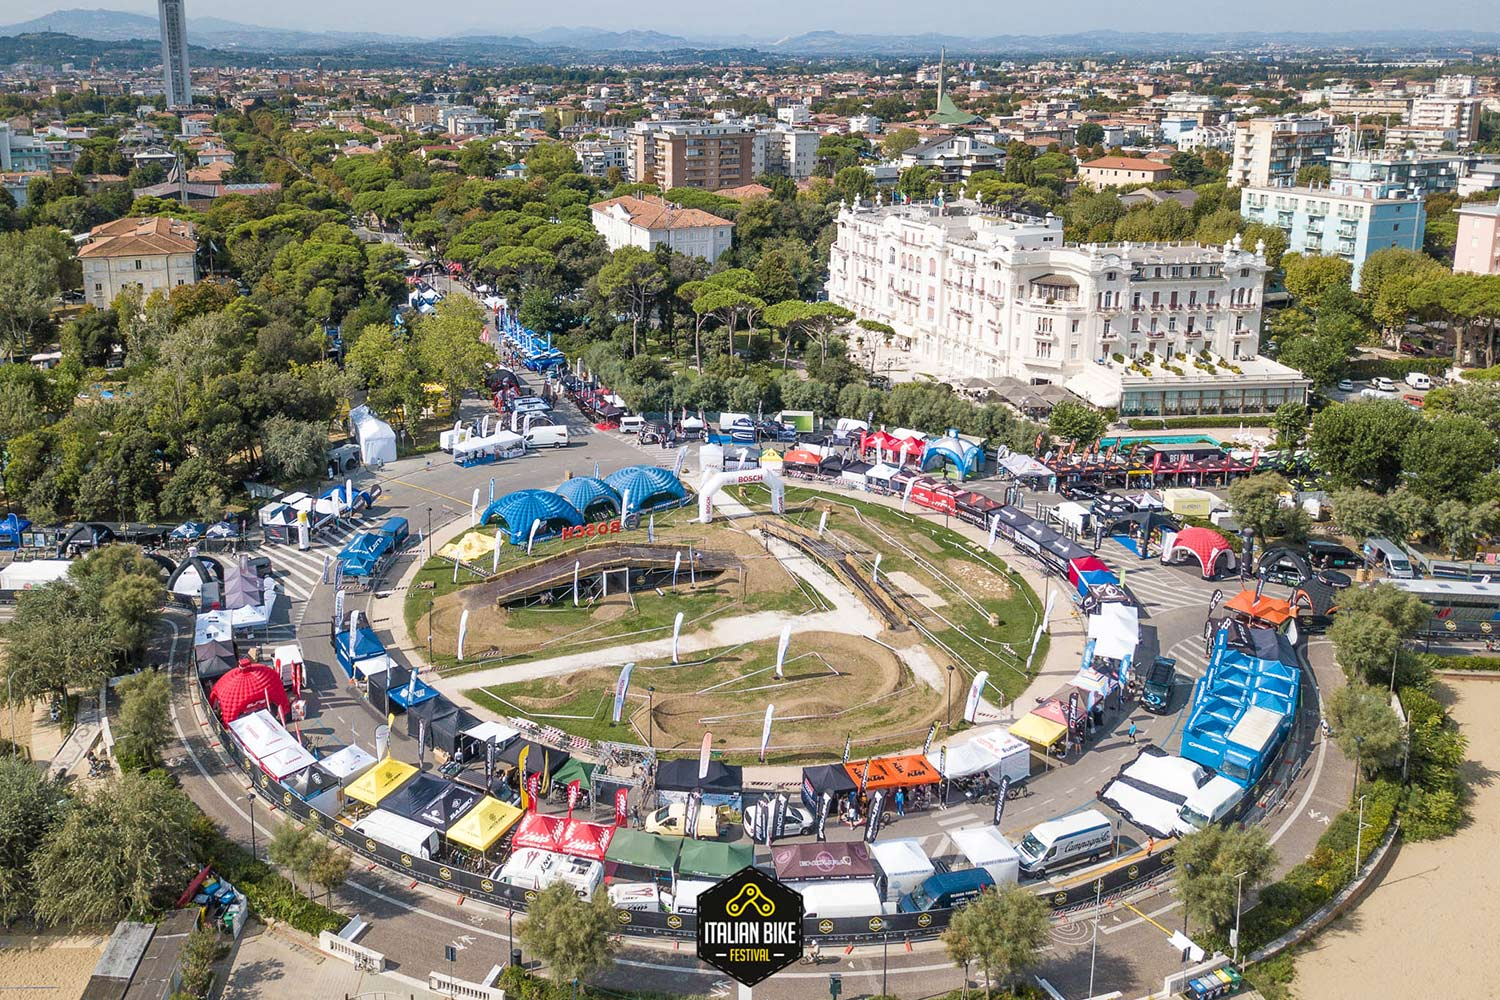 Italian Bike Festival In Rimini 2019